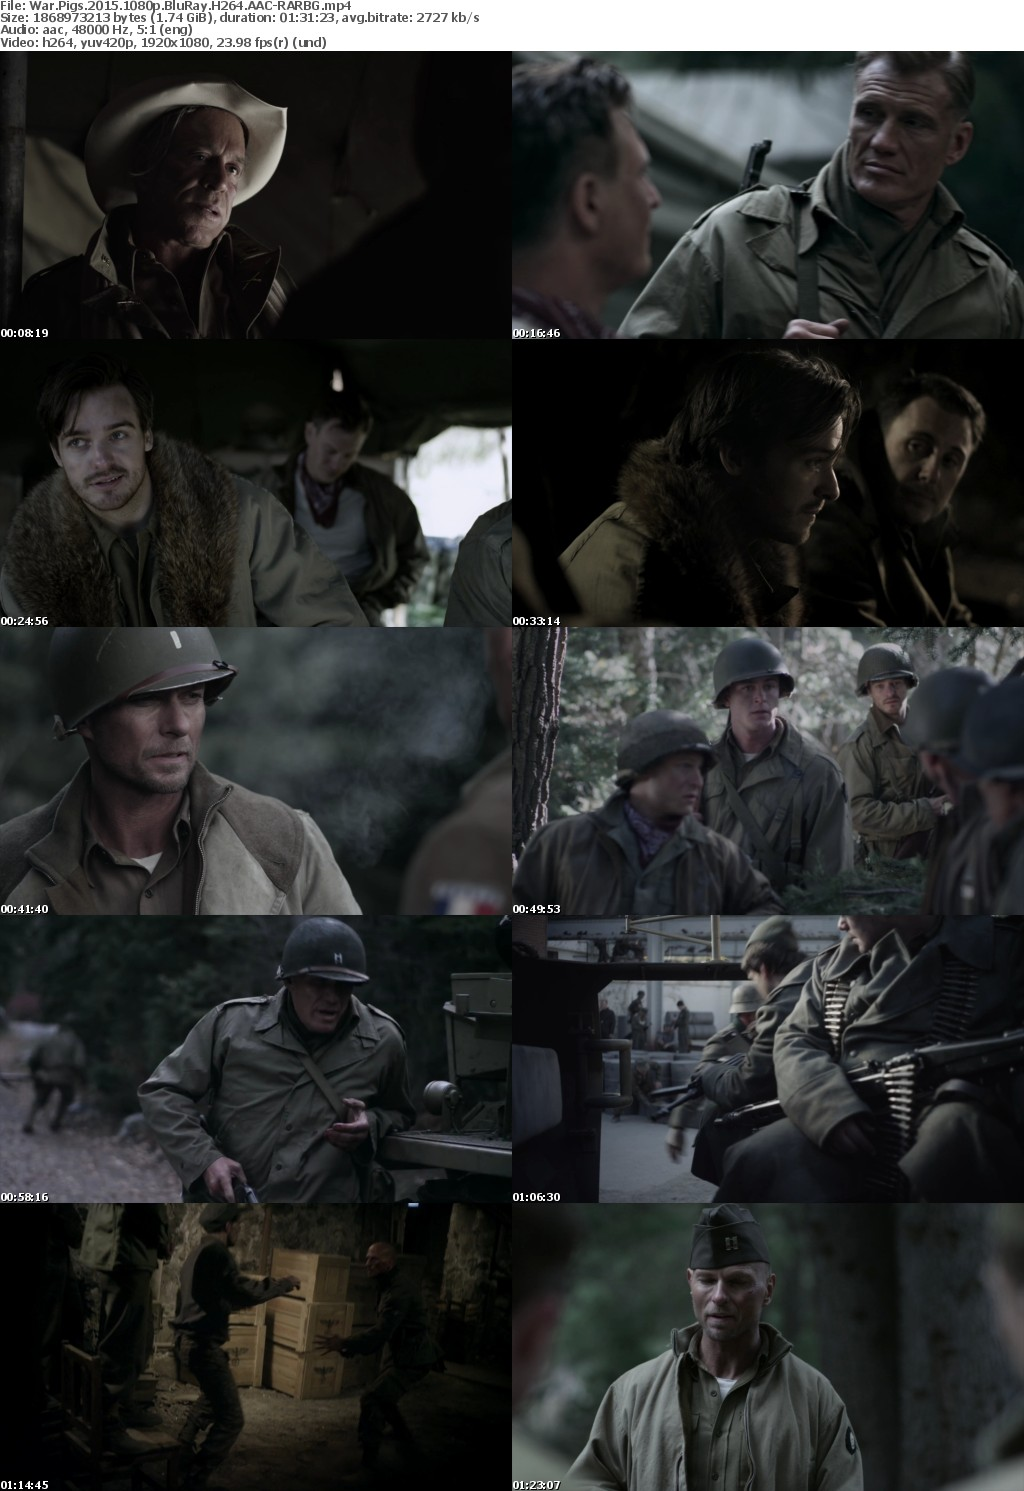 War Pigs (2015) 1080p BluRay H264 AAC-RARBG